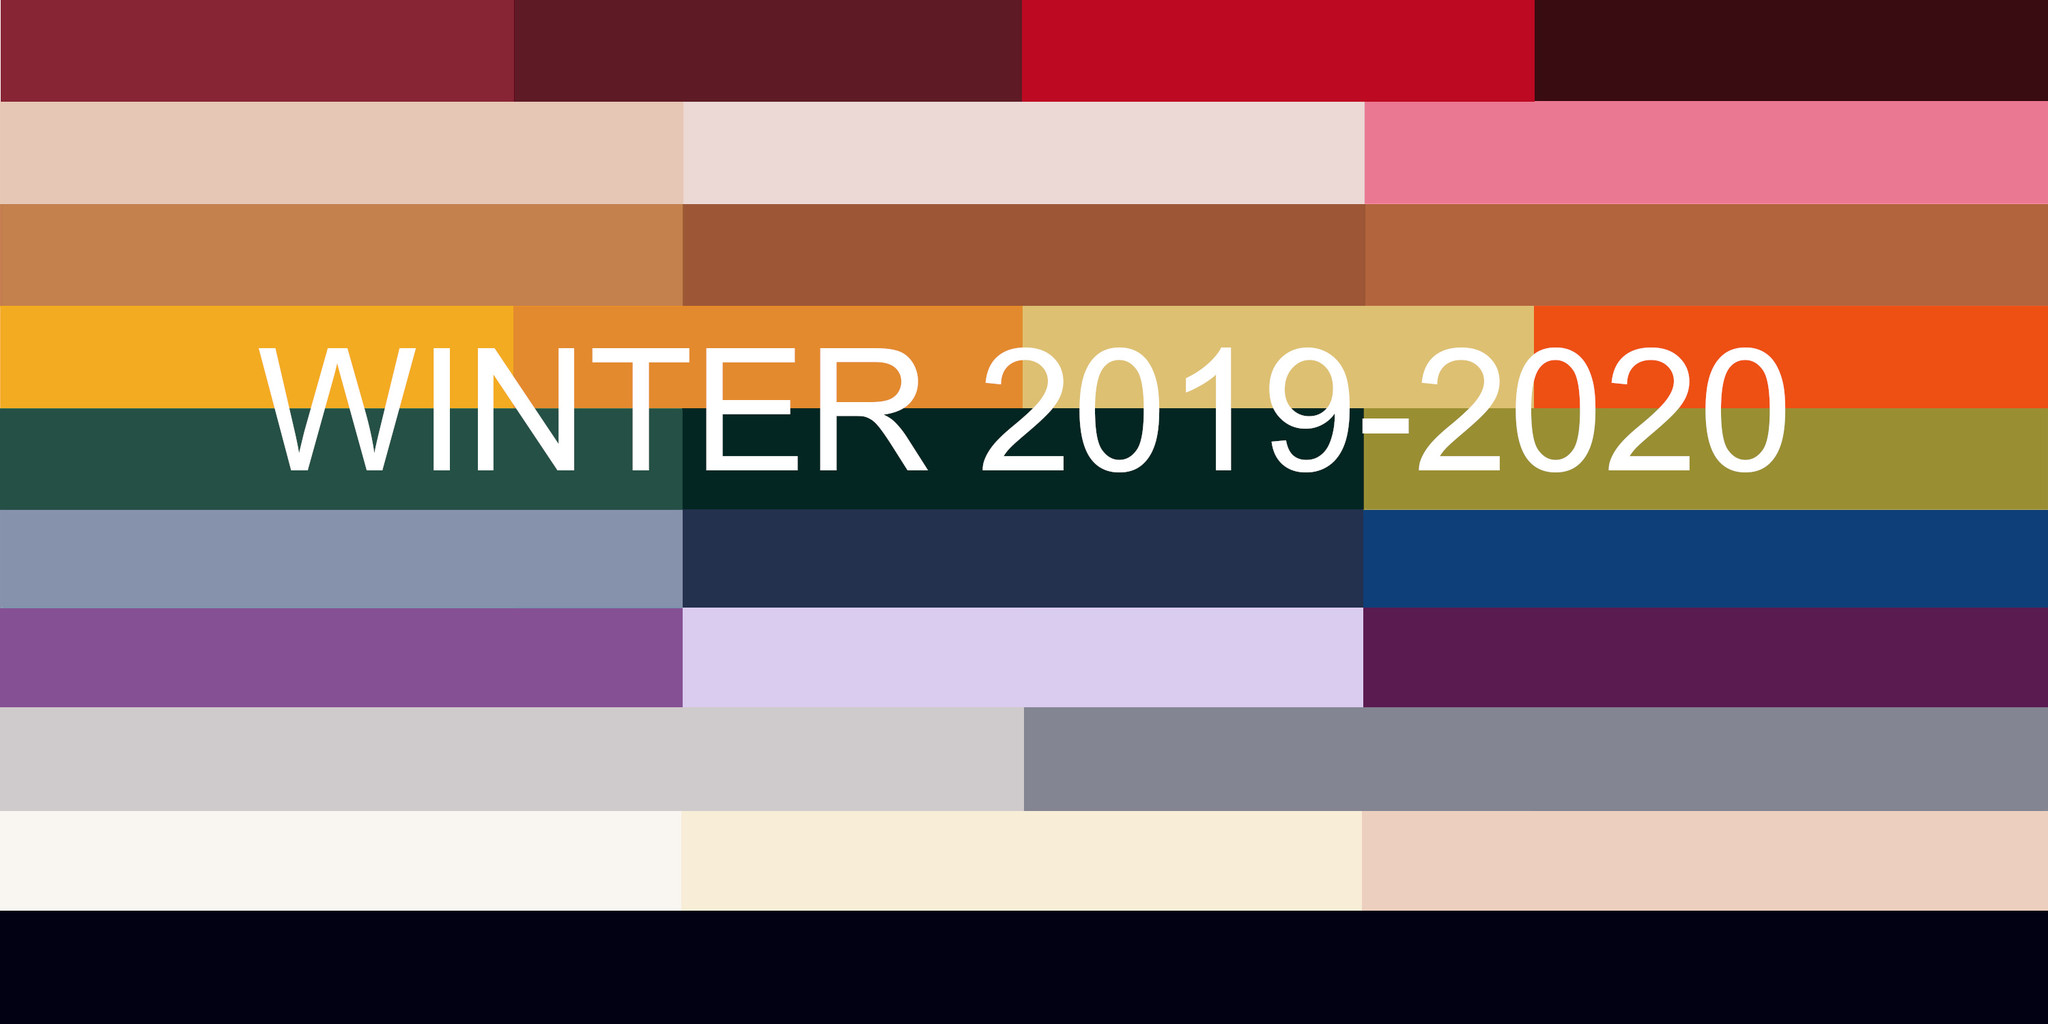 2020 To 2019 Winter.What Are The Fashion Colours For The Winter And Fall 2019